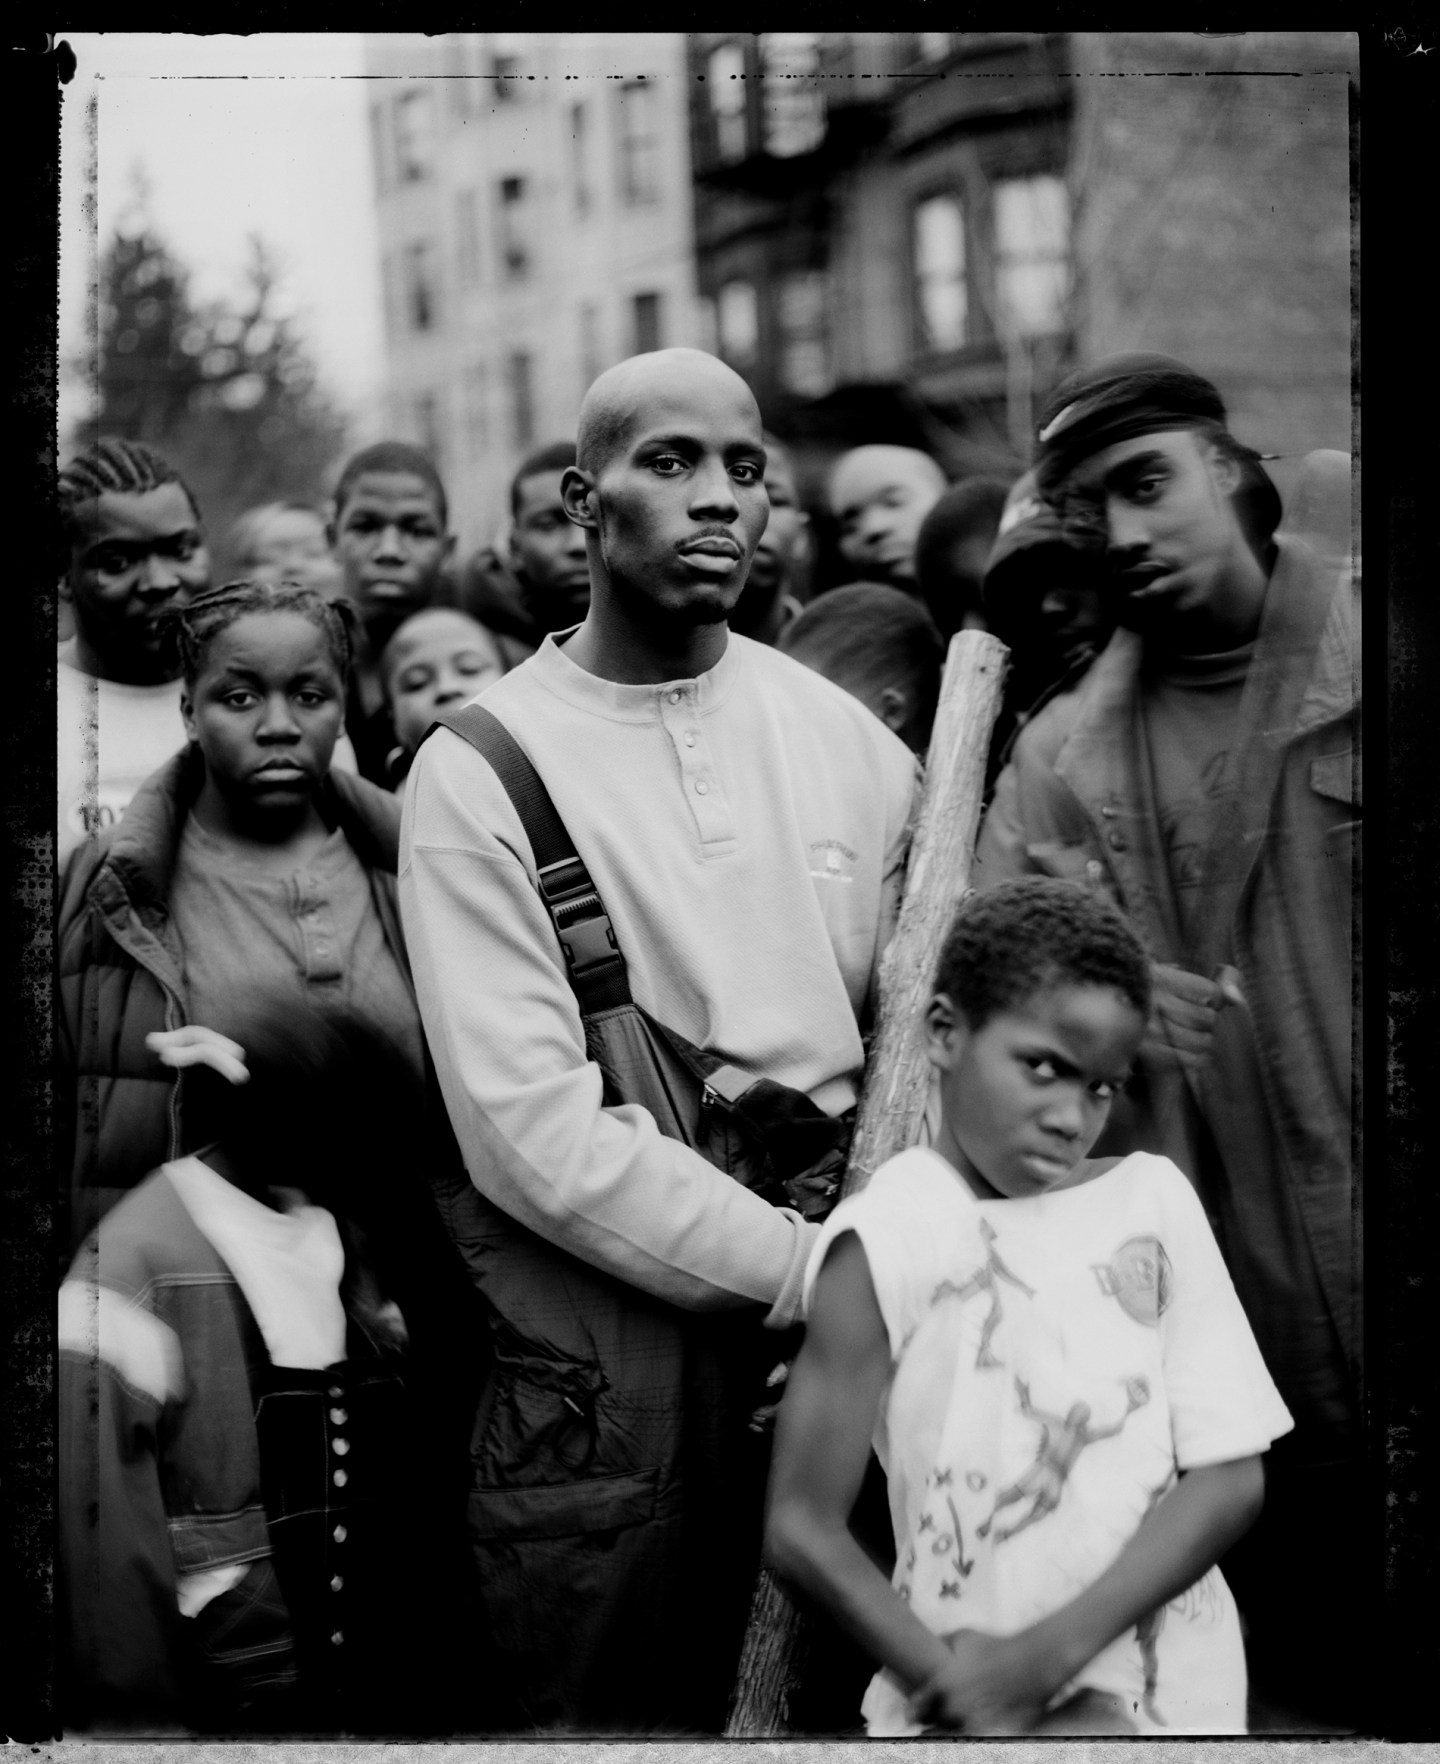 The True Story Behind DMX's Flesh of My Flesh, Blood of My Blood